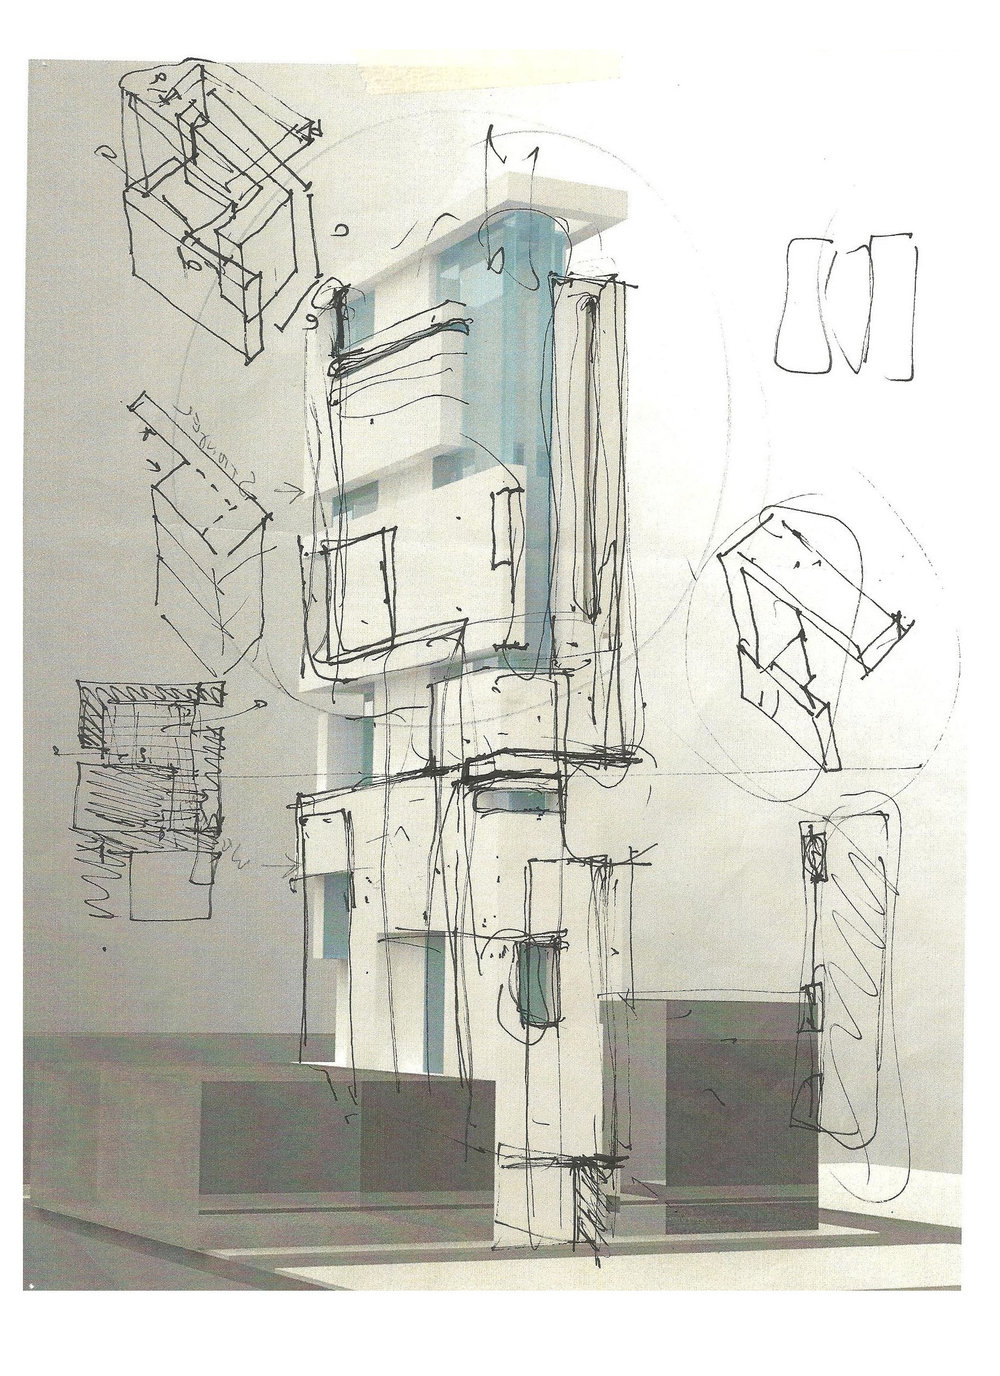 This High-rise proposal for 1527 Walnut Street is based on a study of the underlying geometries in cubist art. Cubism shows that a single perspective does not reveal the true nature of a subject. It was this idea that inspired geometric patterns in some of the most influential art of the 20th century to drive the form of the high-rise.